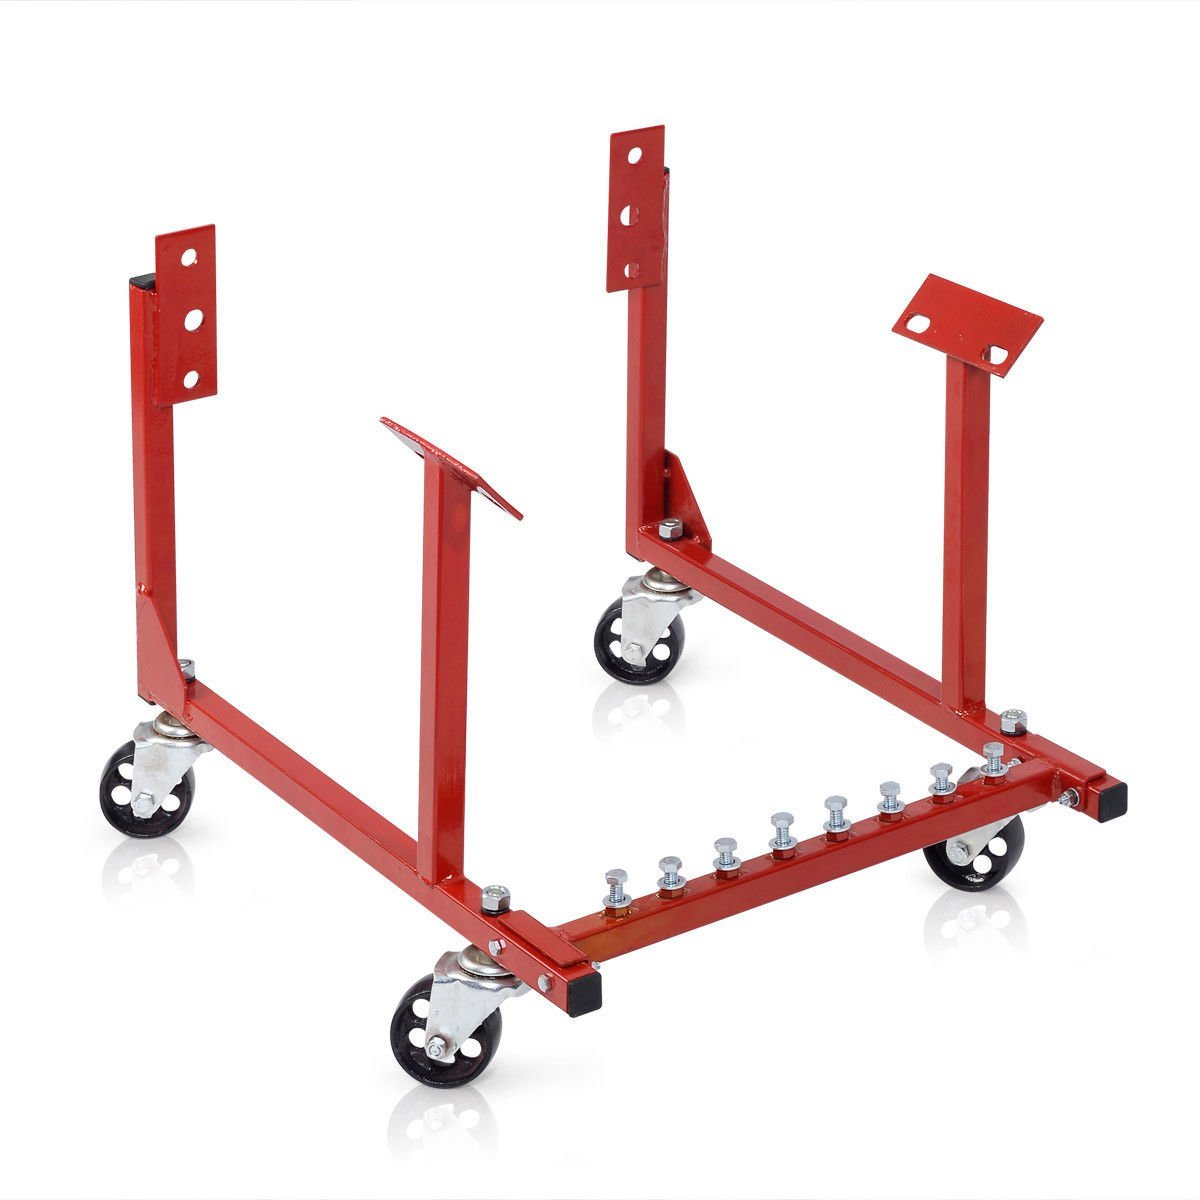 1000lb Auto Engine Cradle Stand Chevrolet Chevy Chrysler V8 with Dolly Wheels